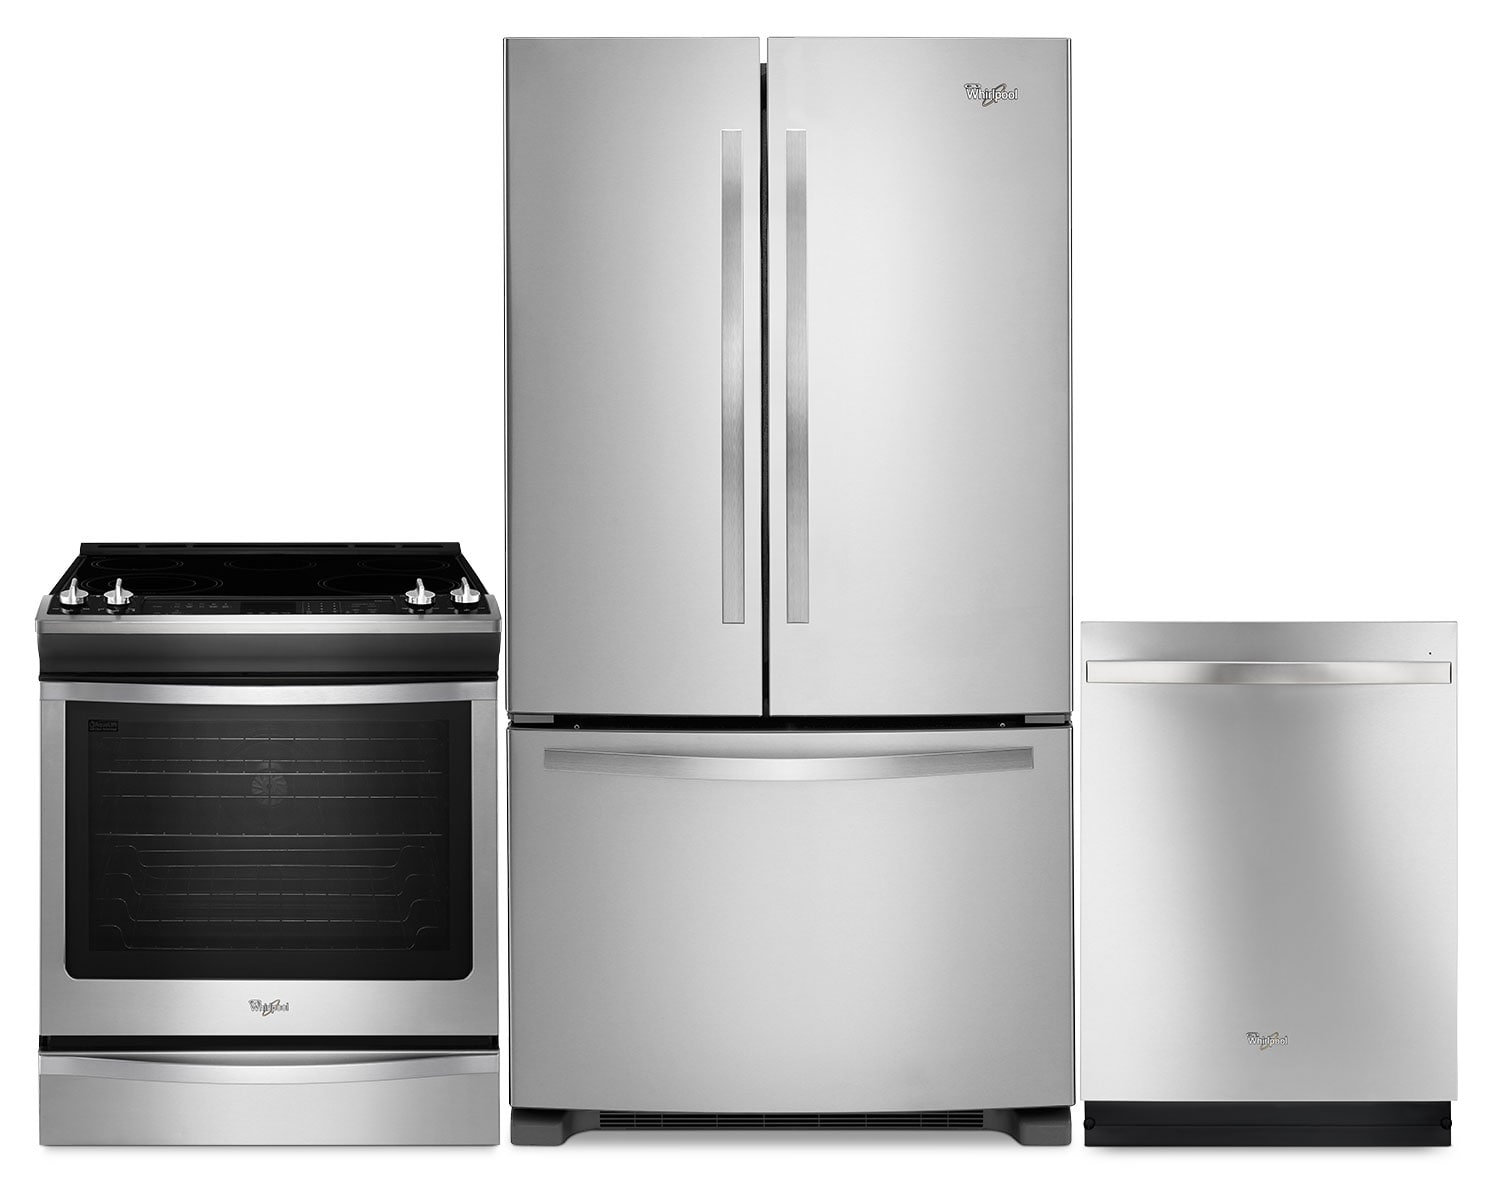 Whirlpool 22 Cu. Ft. Refrigerator, 6.2 Cu. Ft. Range and Built-In Dishwasher – Stainless Steel